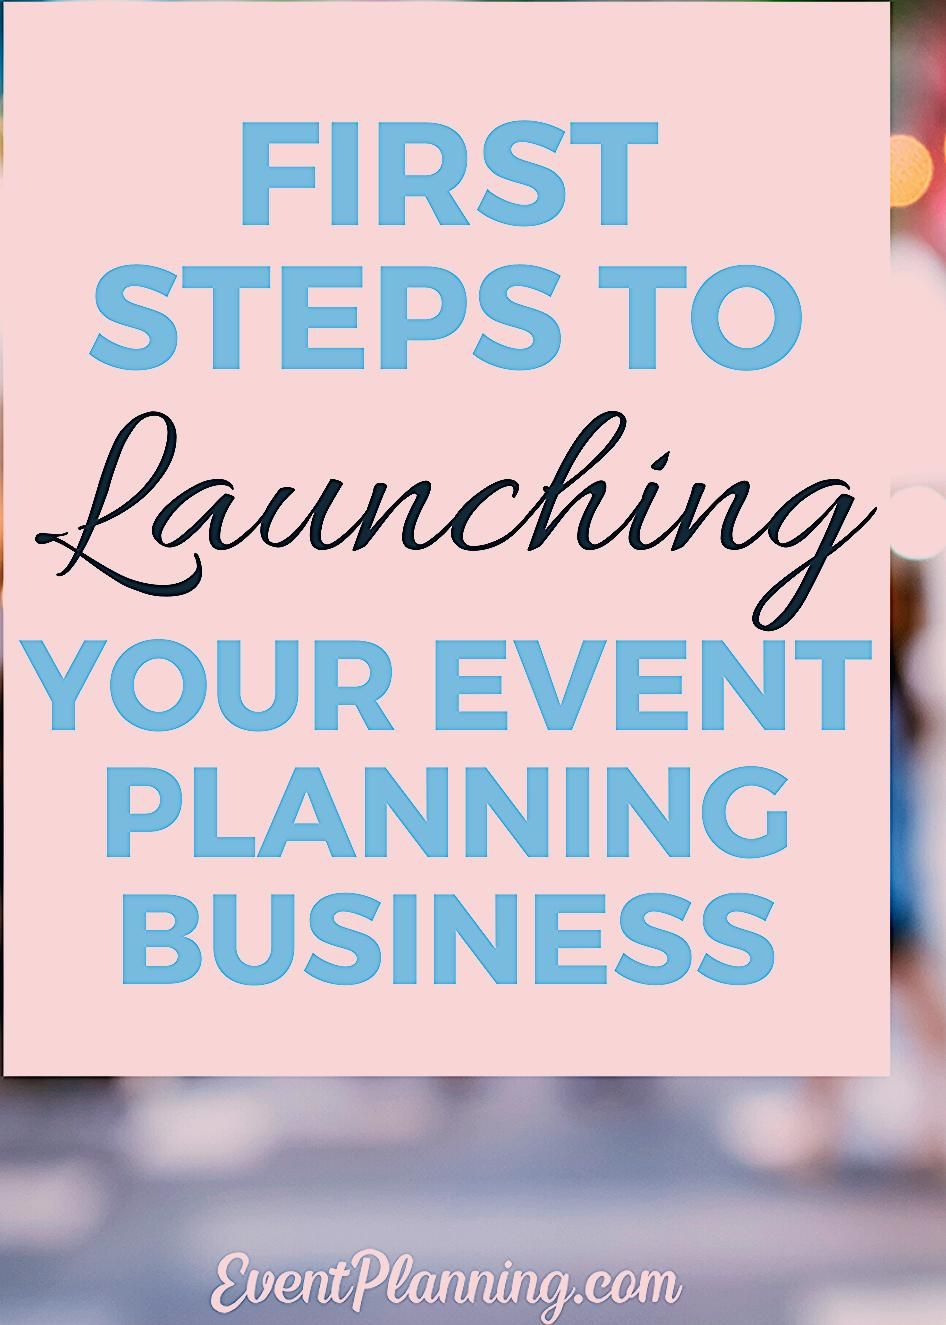 Photo of First steps for launching your event planning business